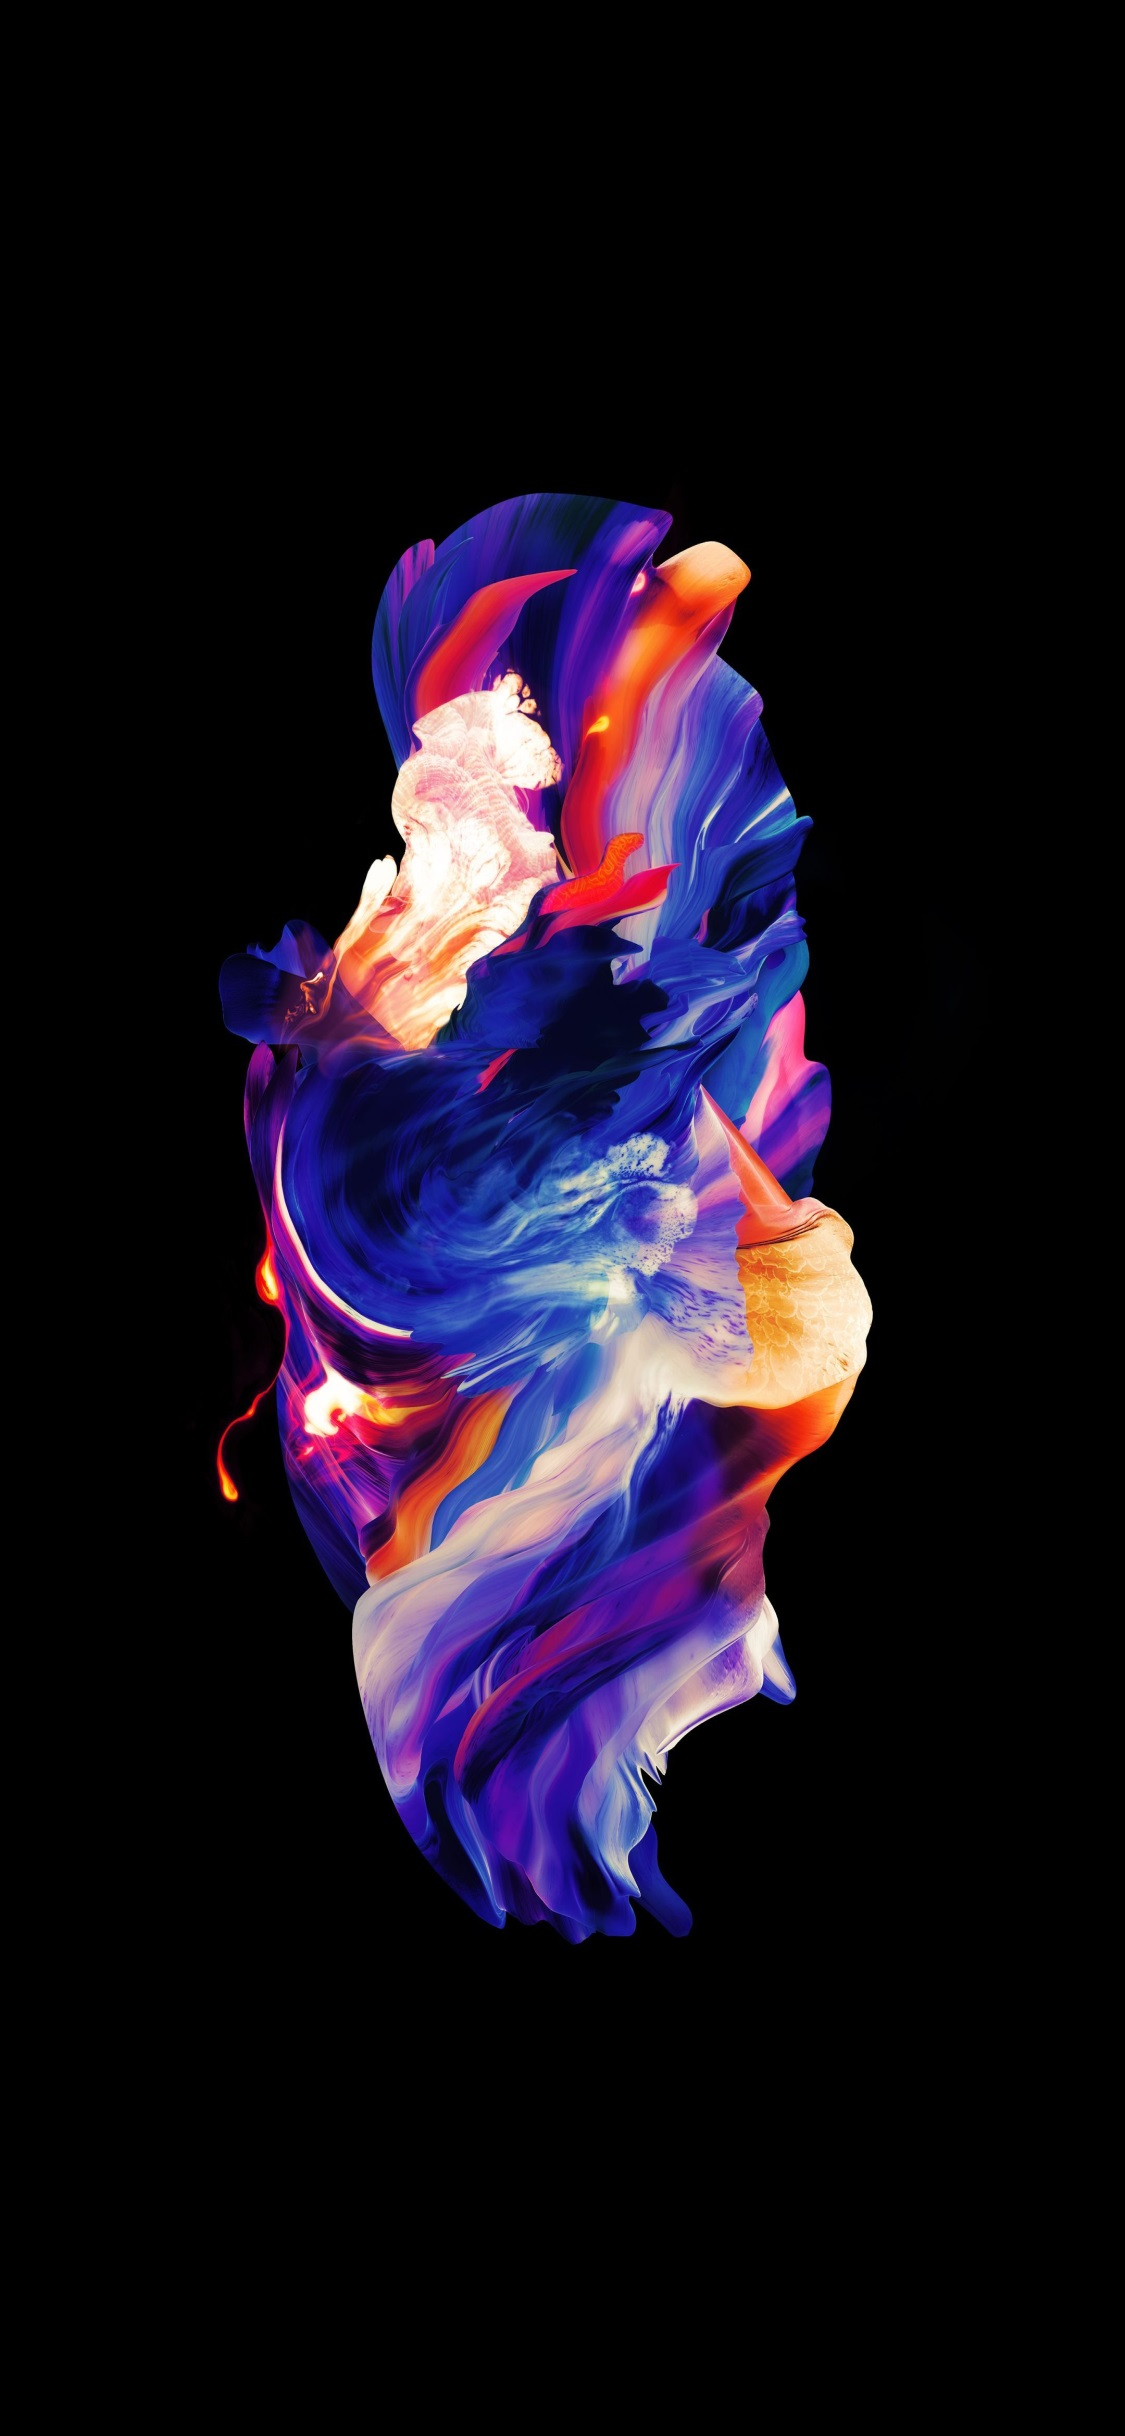 Iphone X Wallpaper Cyberpunk Fresh Eplus 5 Wallpapers Oneplus 5 Wallpaper 4k 1125x2436 Wallpaper Teahub Io